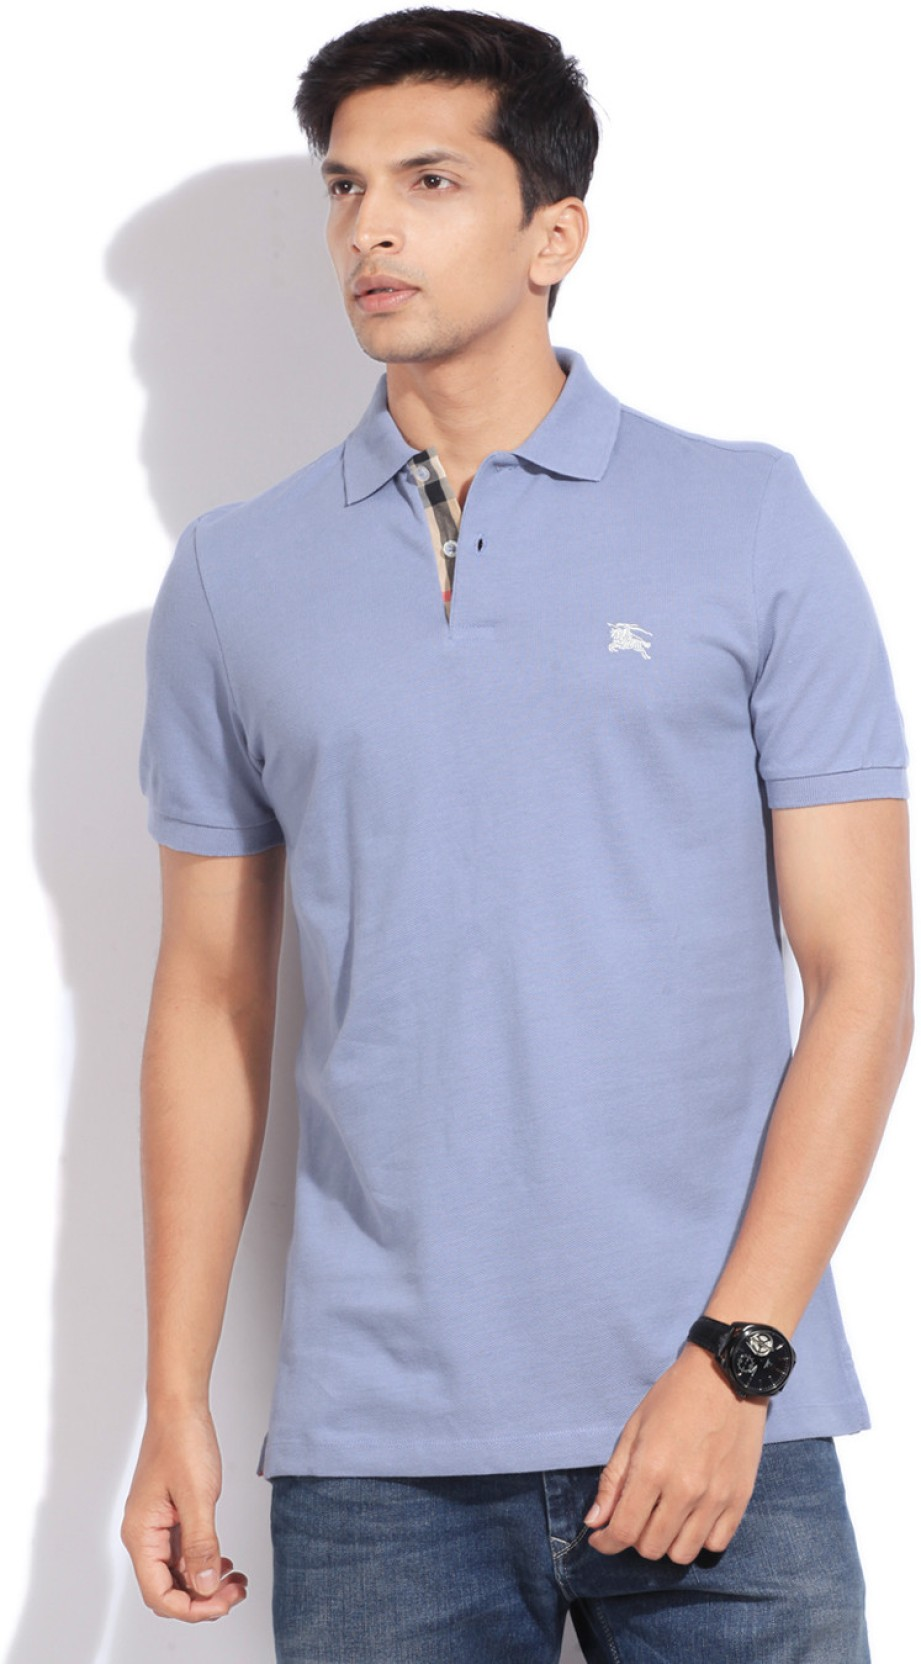 731ad10870f Buy Burberry Shirts Online India